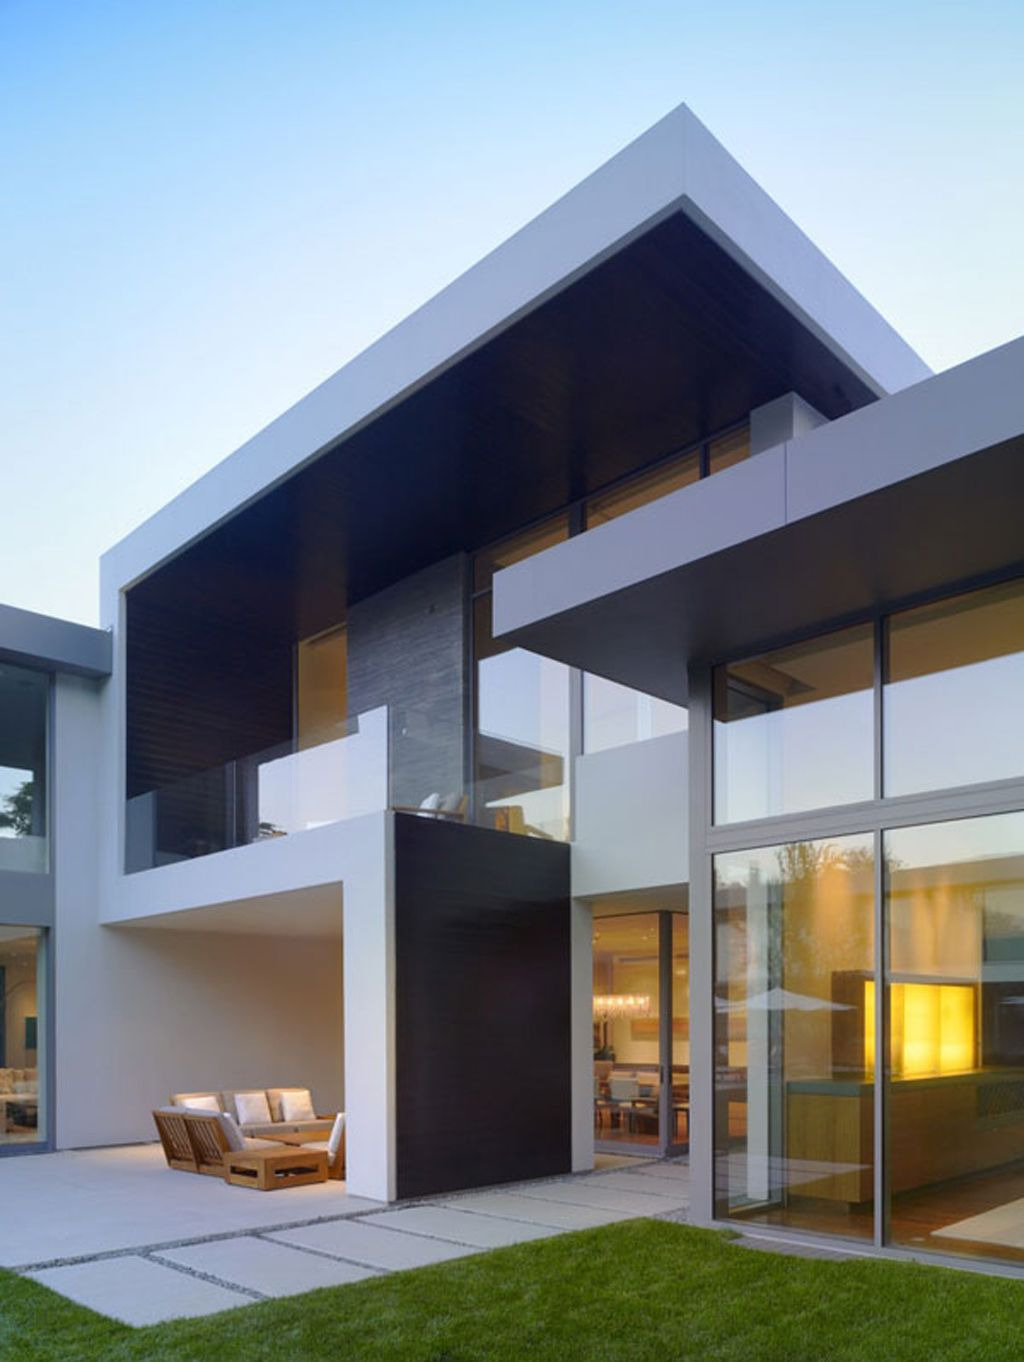 Modern Minimalist House Designs and Architectures Fresh Architecture Minimalist House Design Exterior with Glass